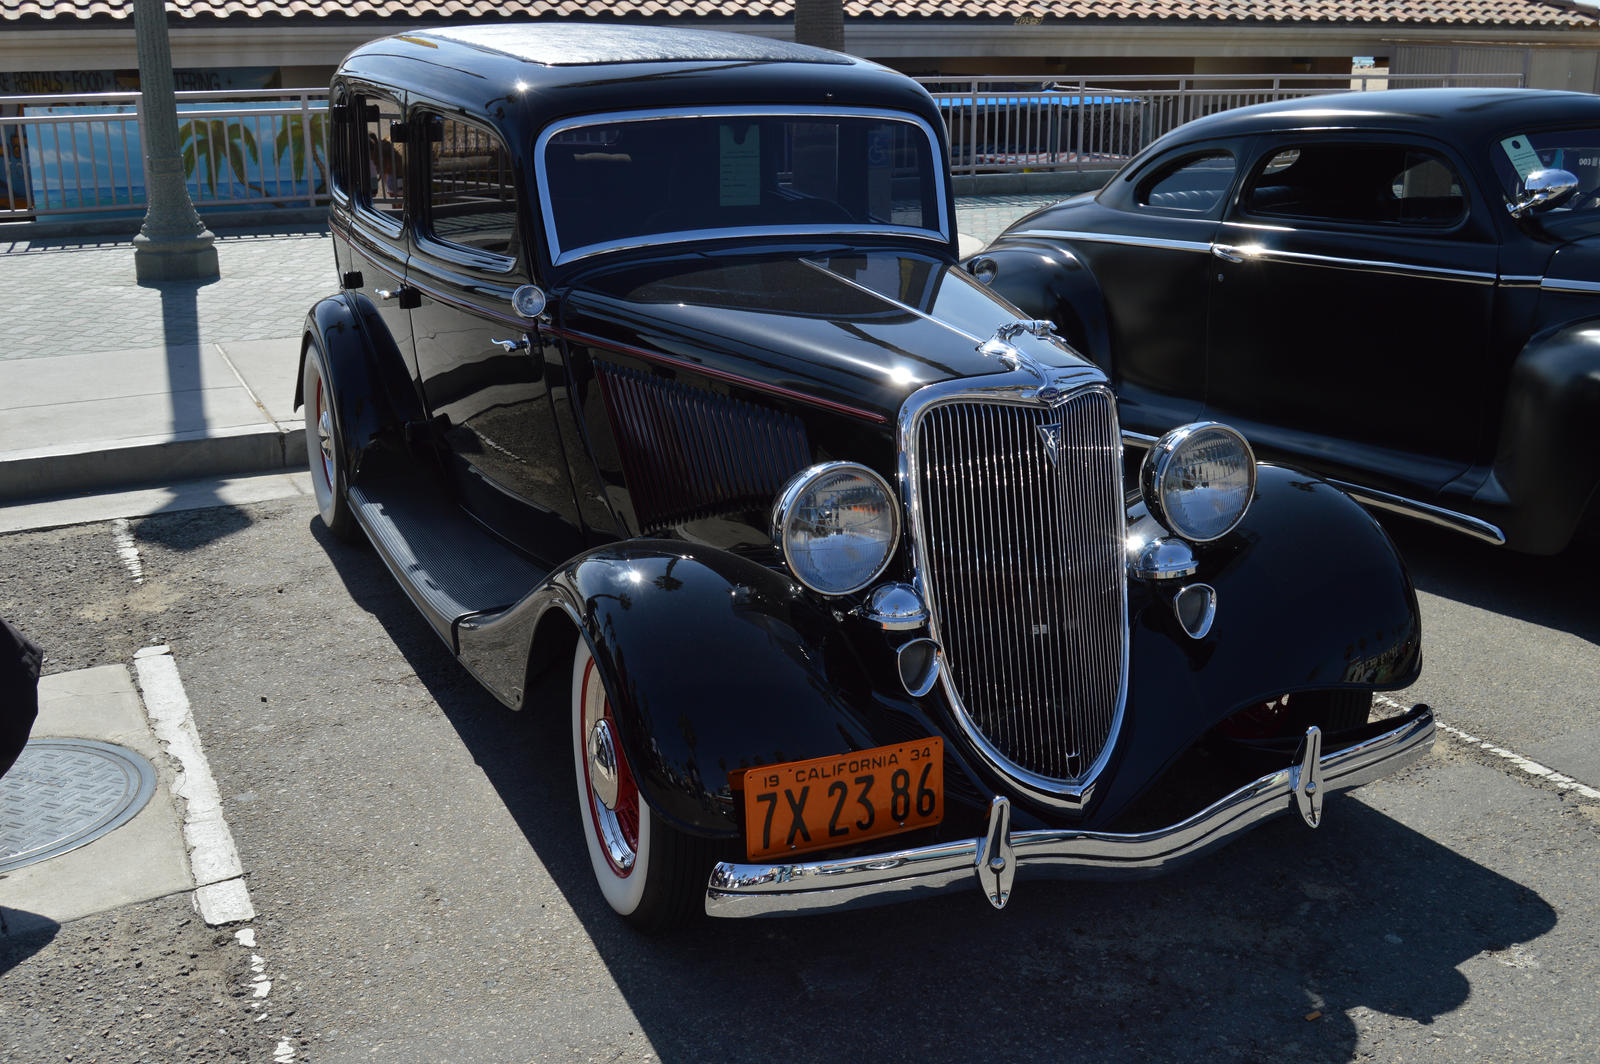 1934 ford four door sedan vi by brooklyn47 on deviantart for 1934 ford four door